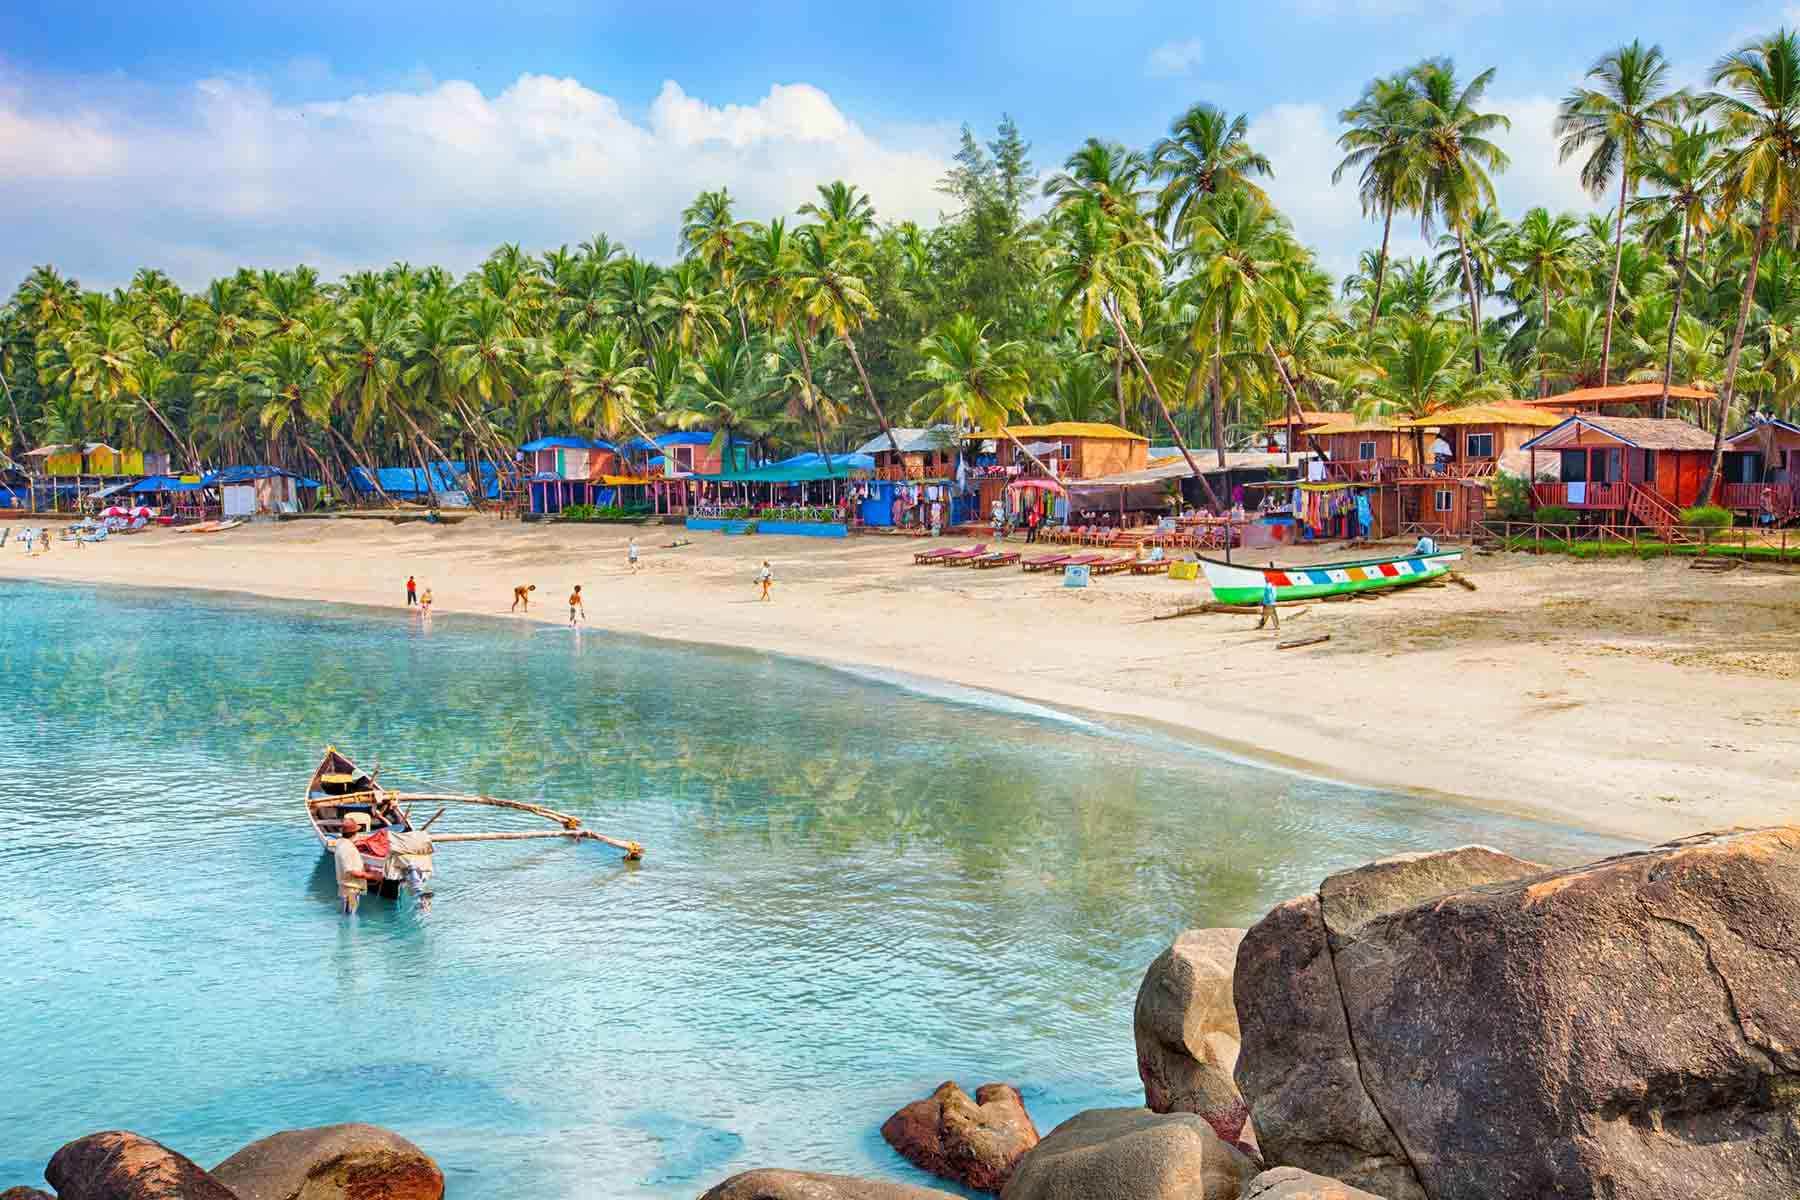 Beautiful Goa province beach in India with fishing boats and stones in the sea